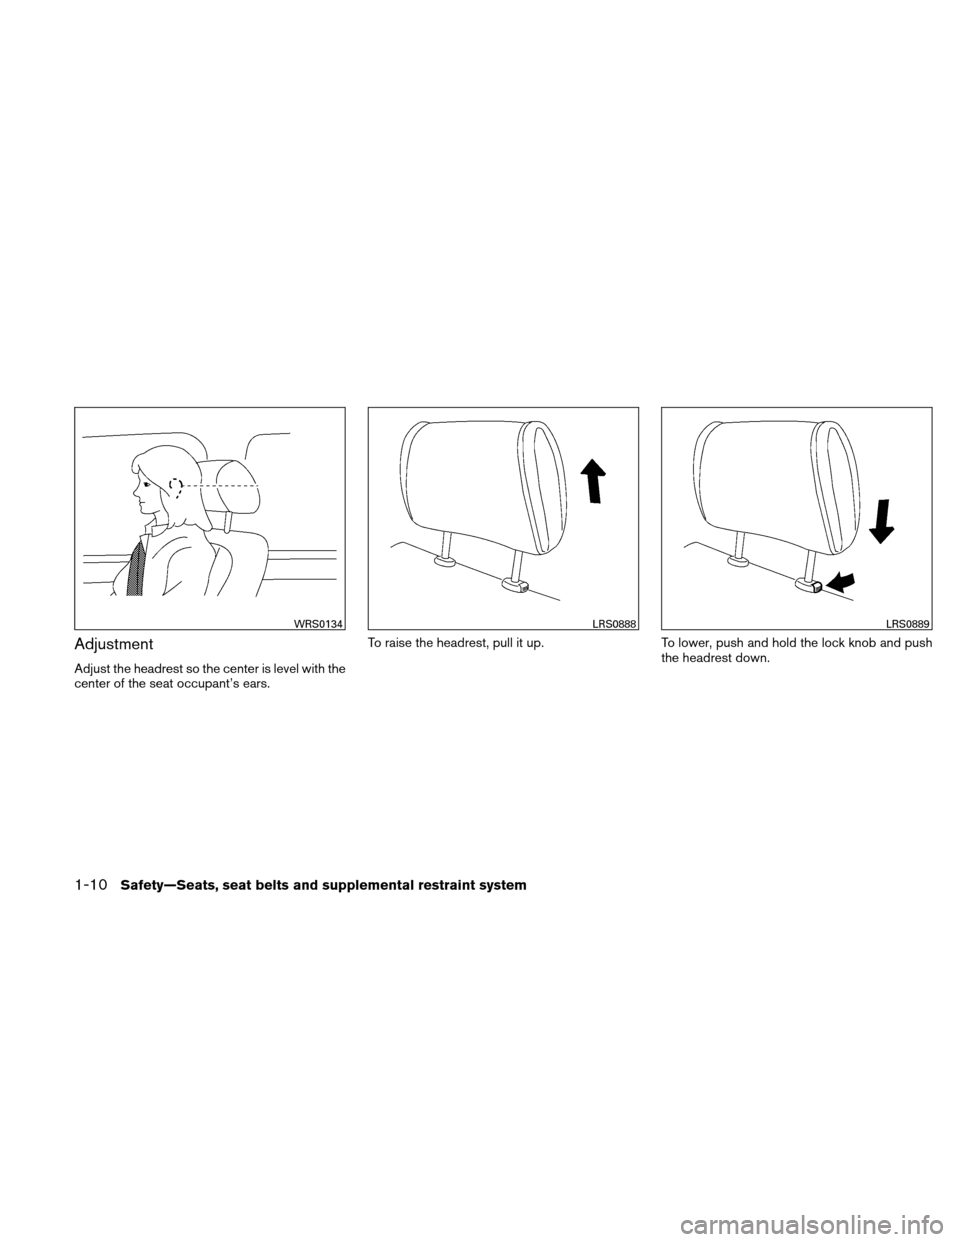 NISSAN VERSA HATCHBACK 2011 1.G Owners Manual Adjustment Adjust the headrest so the center is level with the center of the seat occupant's ears.To raise the headrest, pull it up. To lower, push and hold the lock knob and push the headrest down.